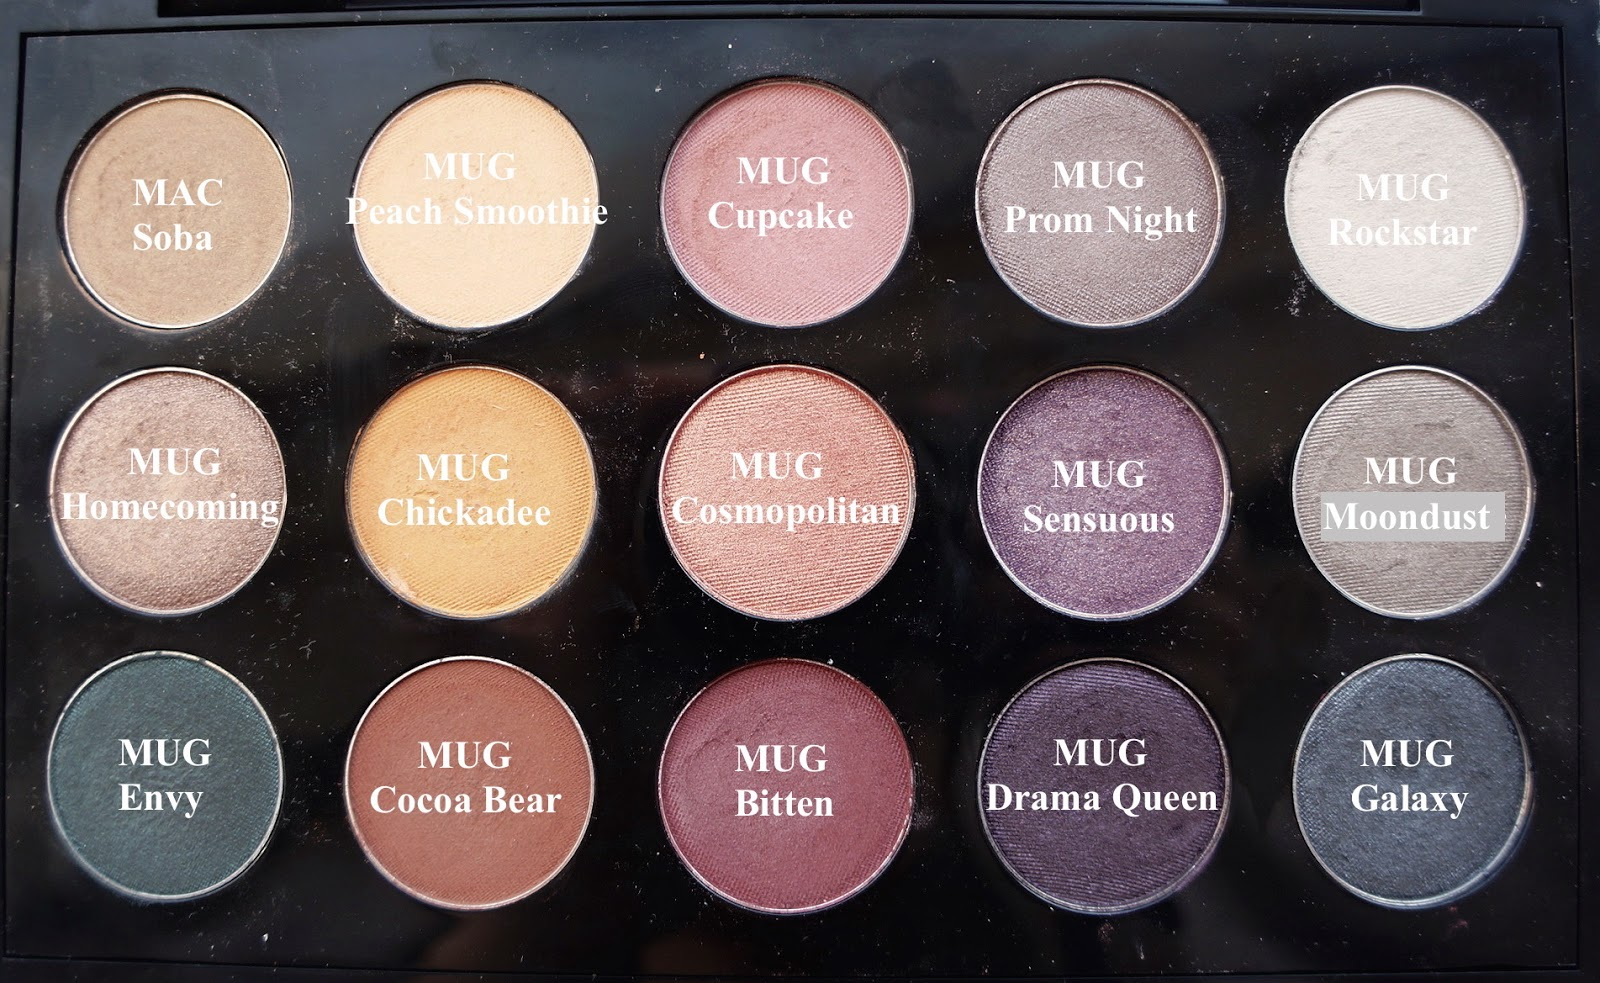 Below is the swatches of them from top to bottom and from left to right.